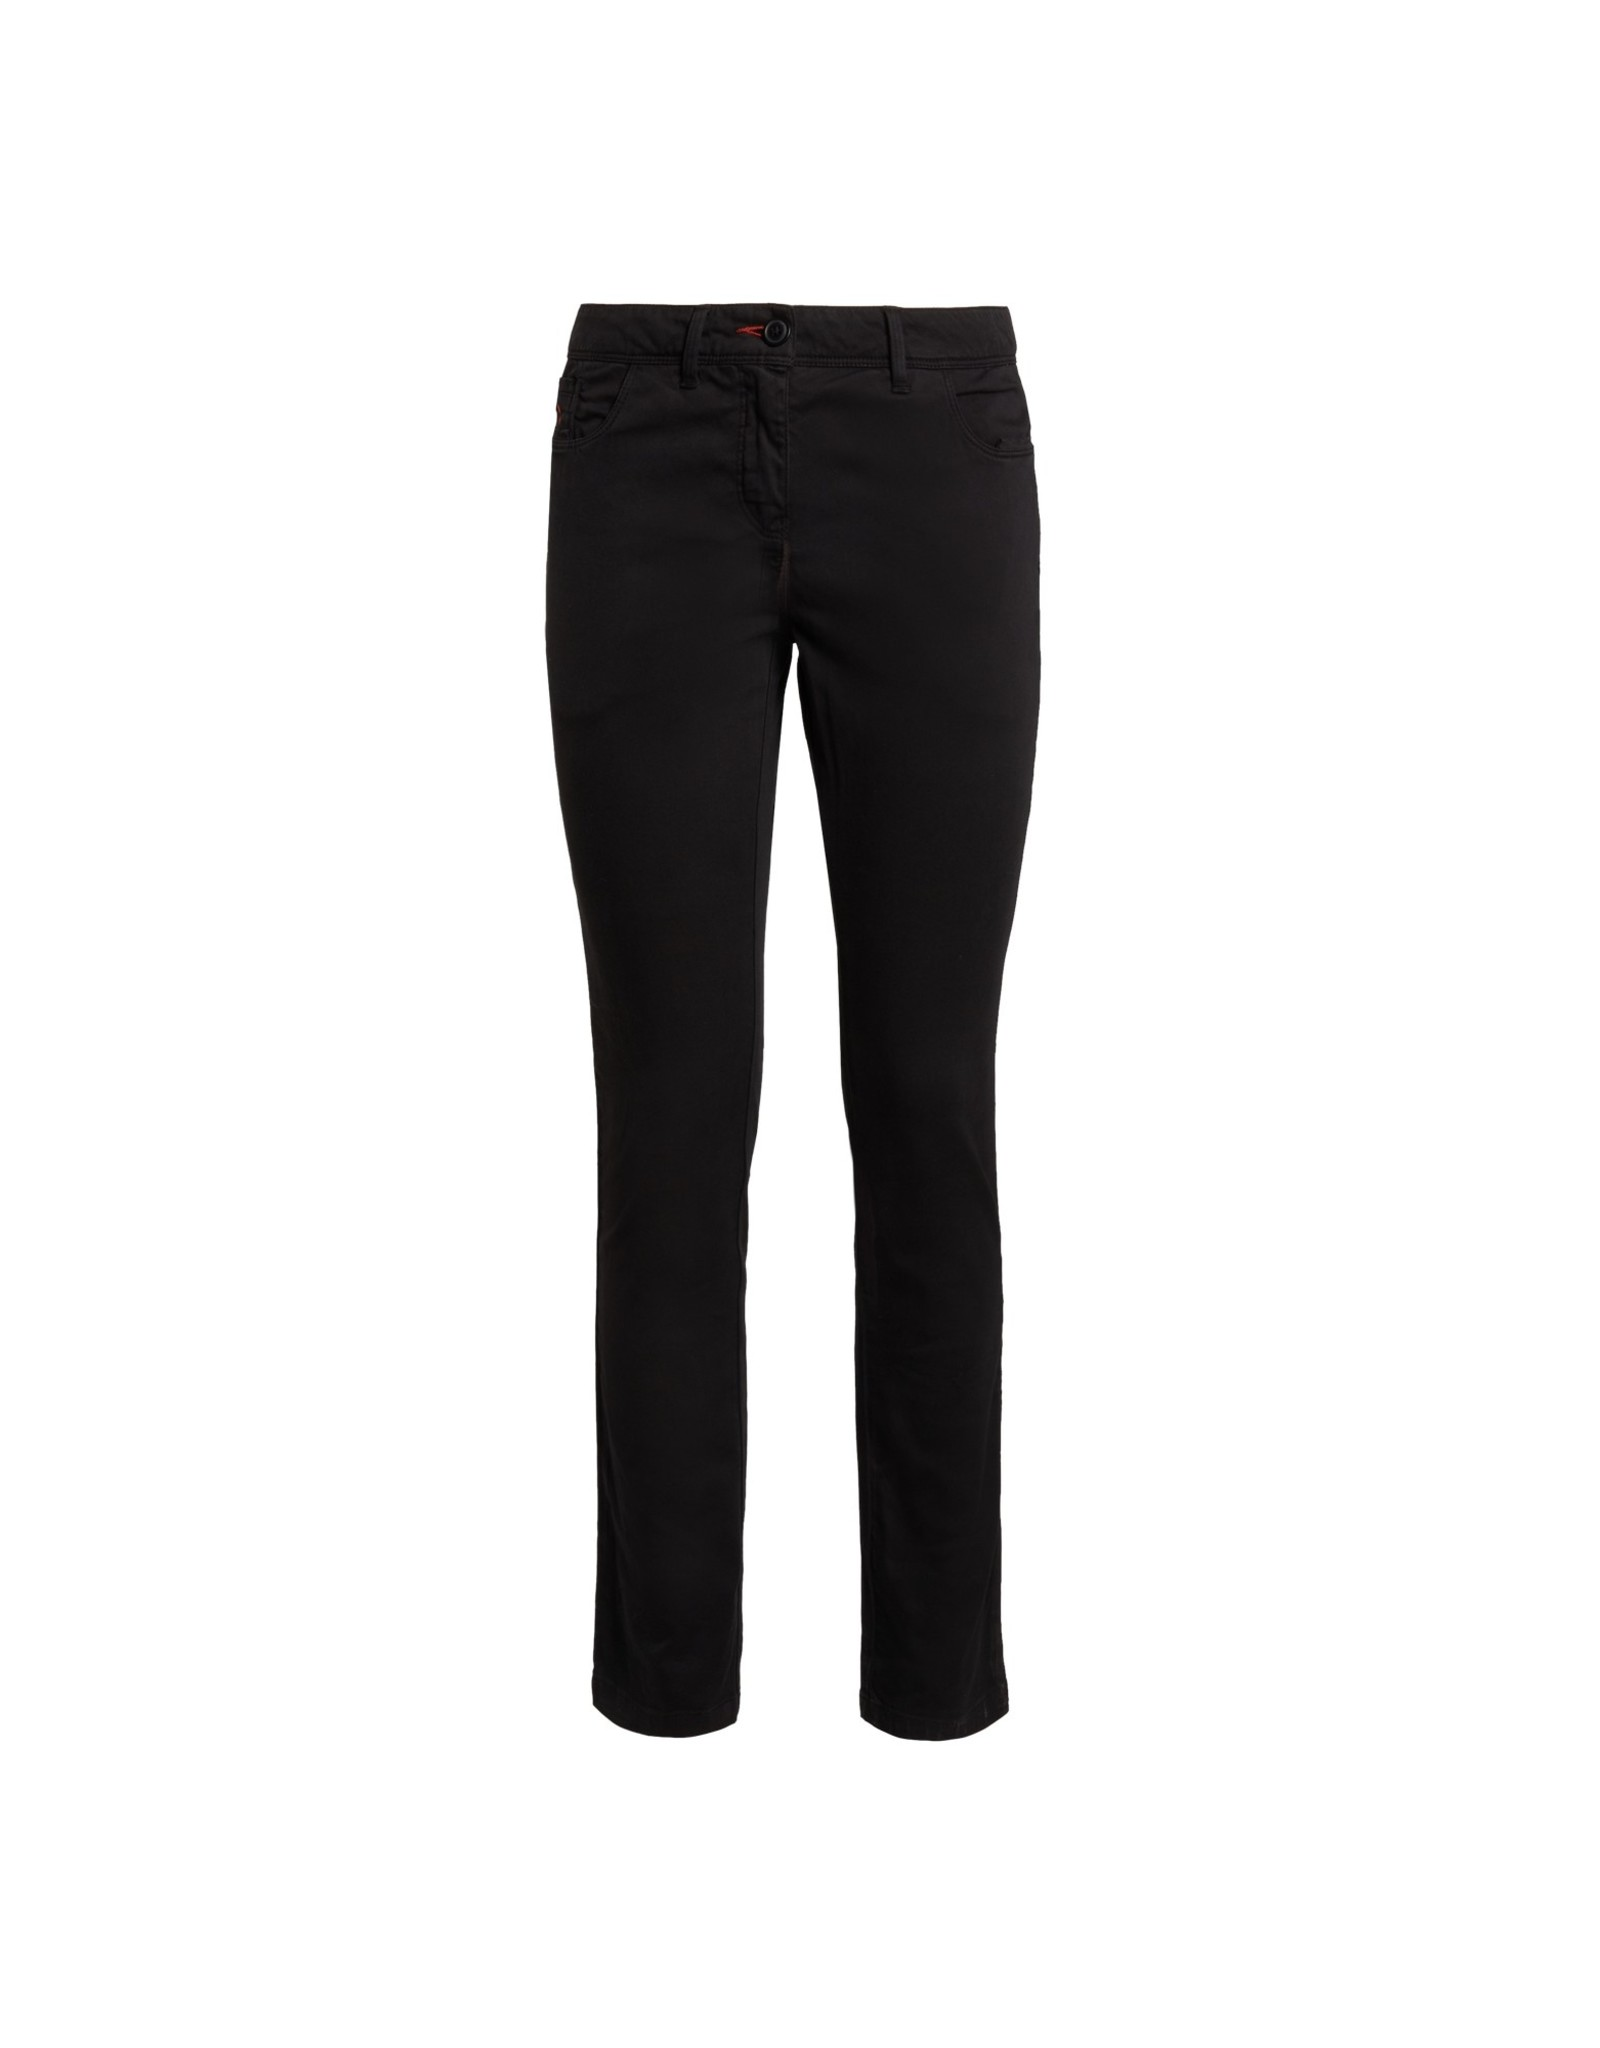 Slam Trousers B38 - Black ( 500 )